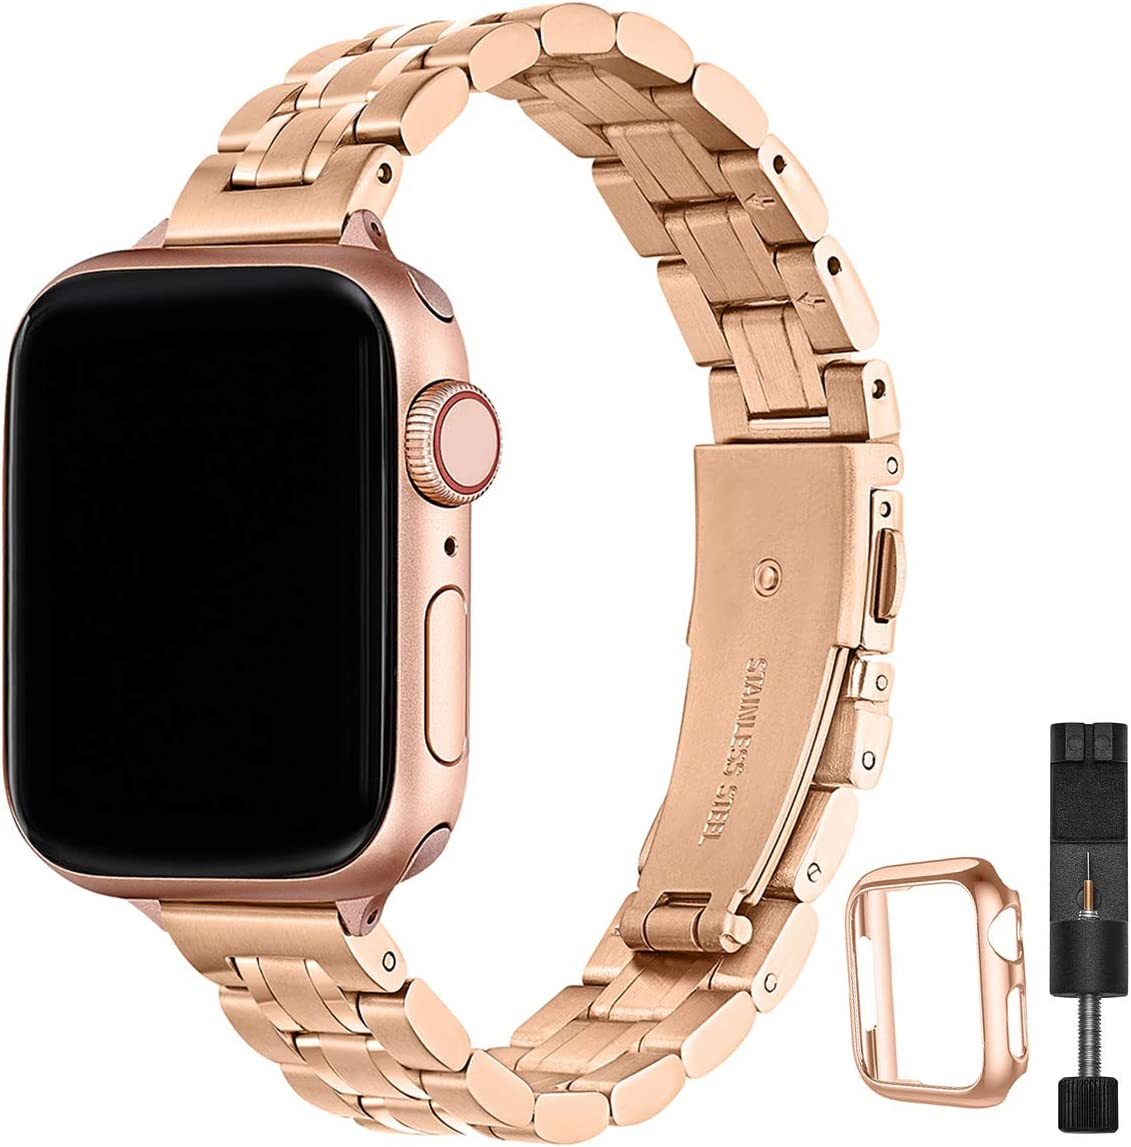 STIROLL Thin Replacement Band Compatible for Apple Watch 38mm 40mm, Stainless Steel Metal Wristband Women Men for iWatch 5/4/3/2/1(Rose Gold)